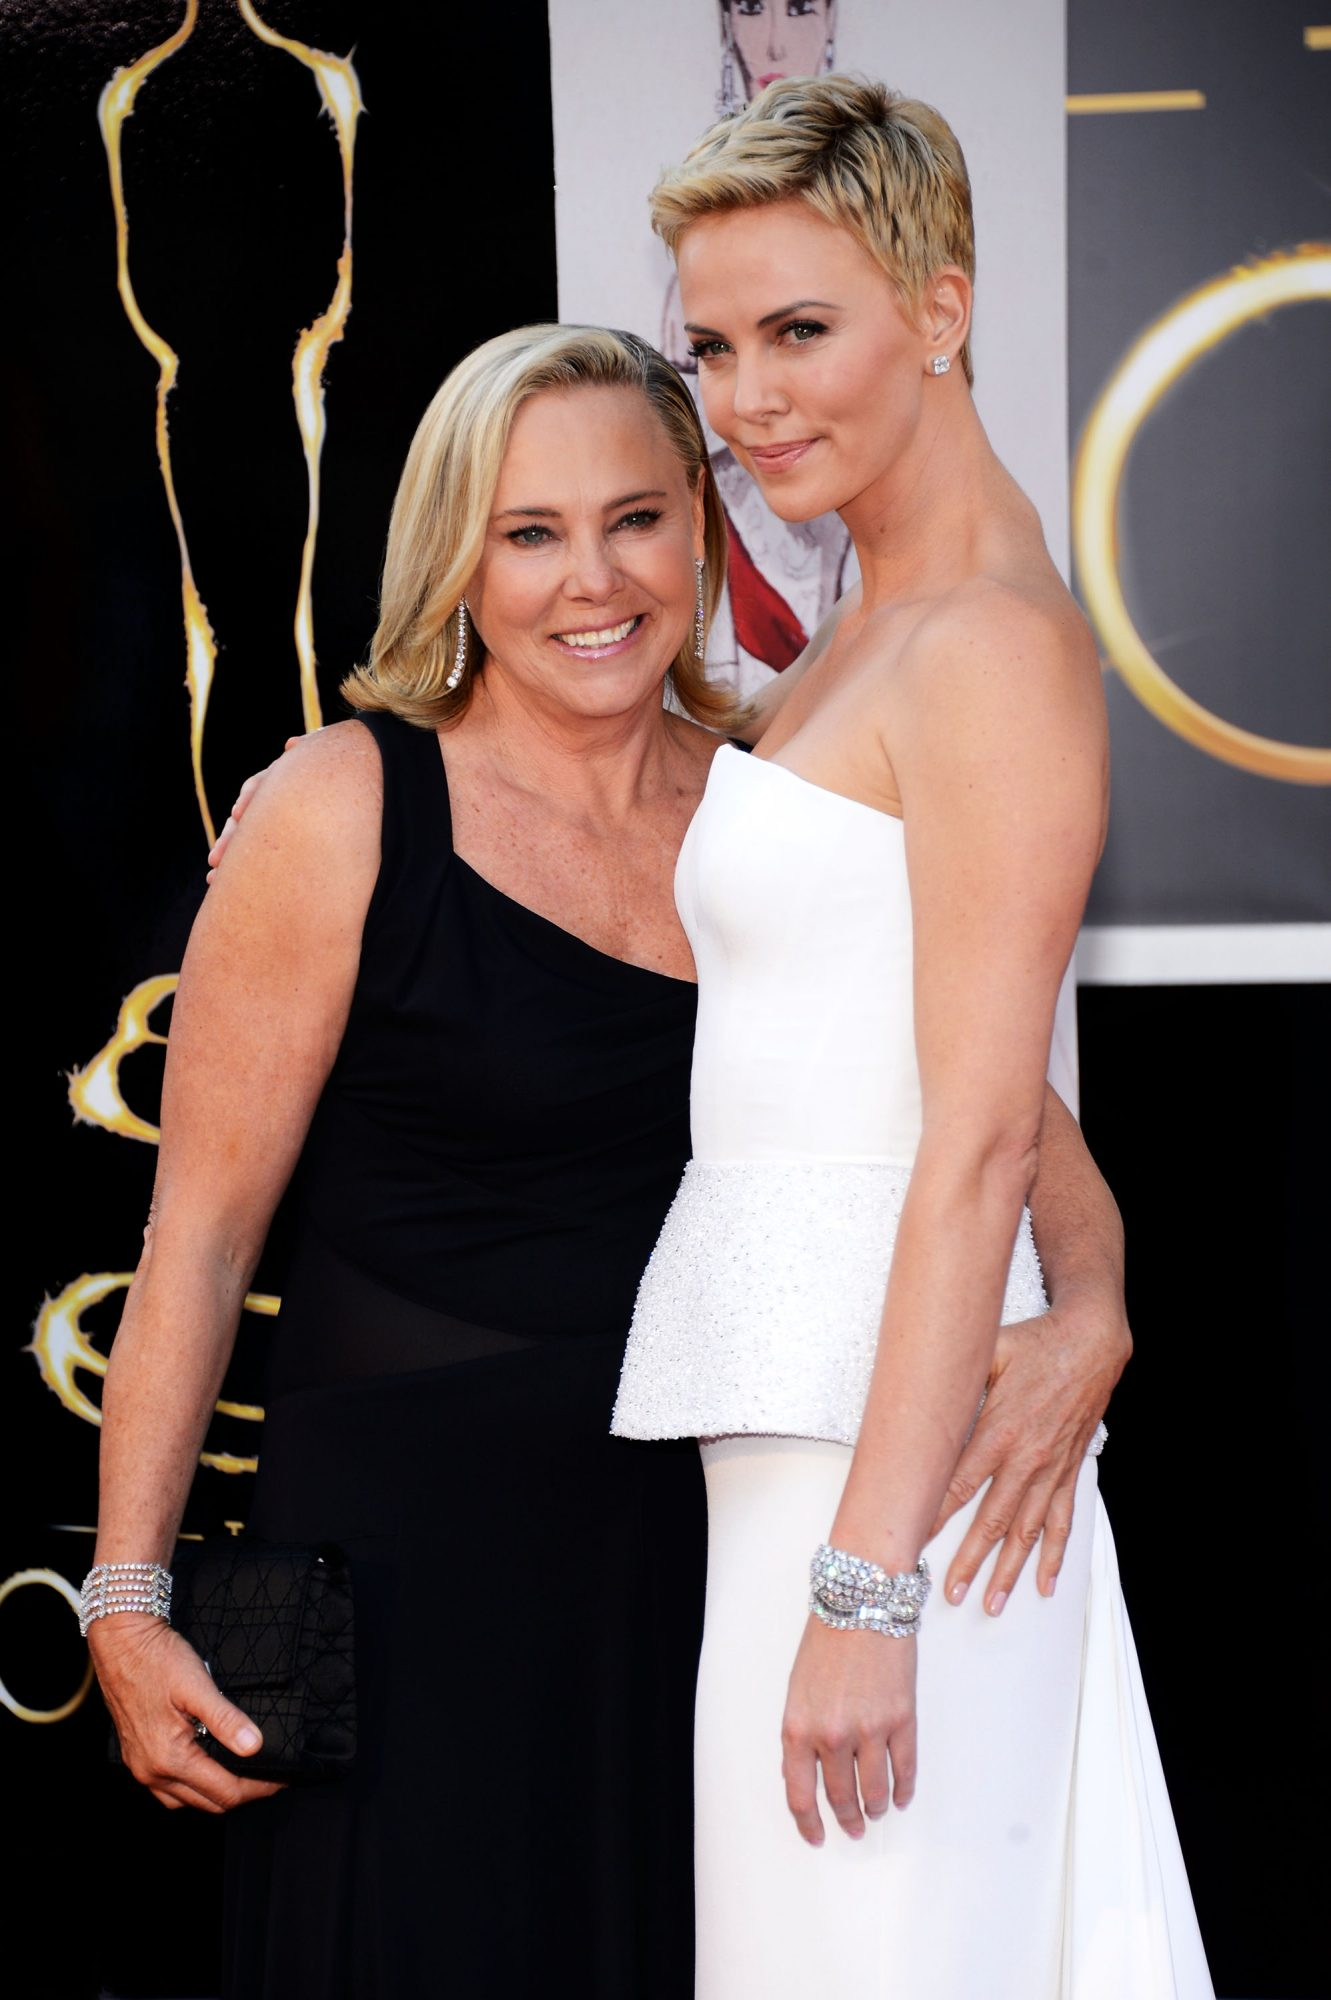 Charlize Theron and her mom lead